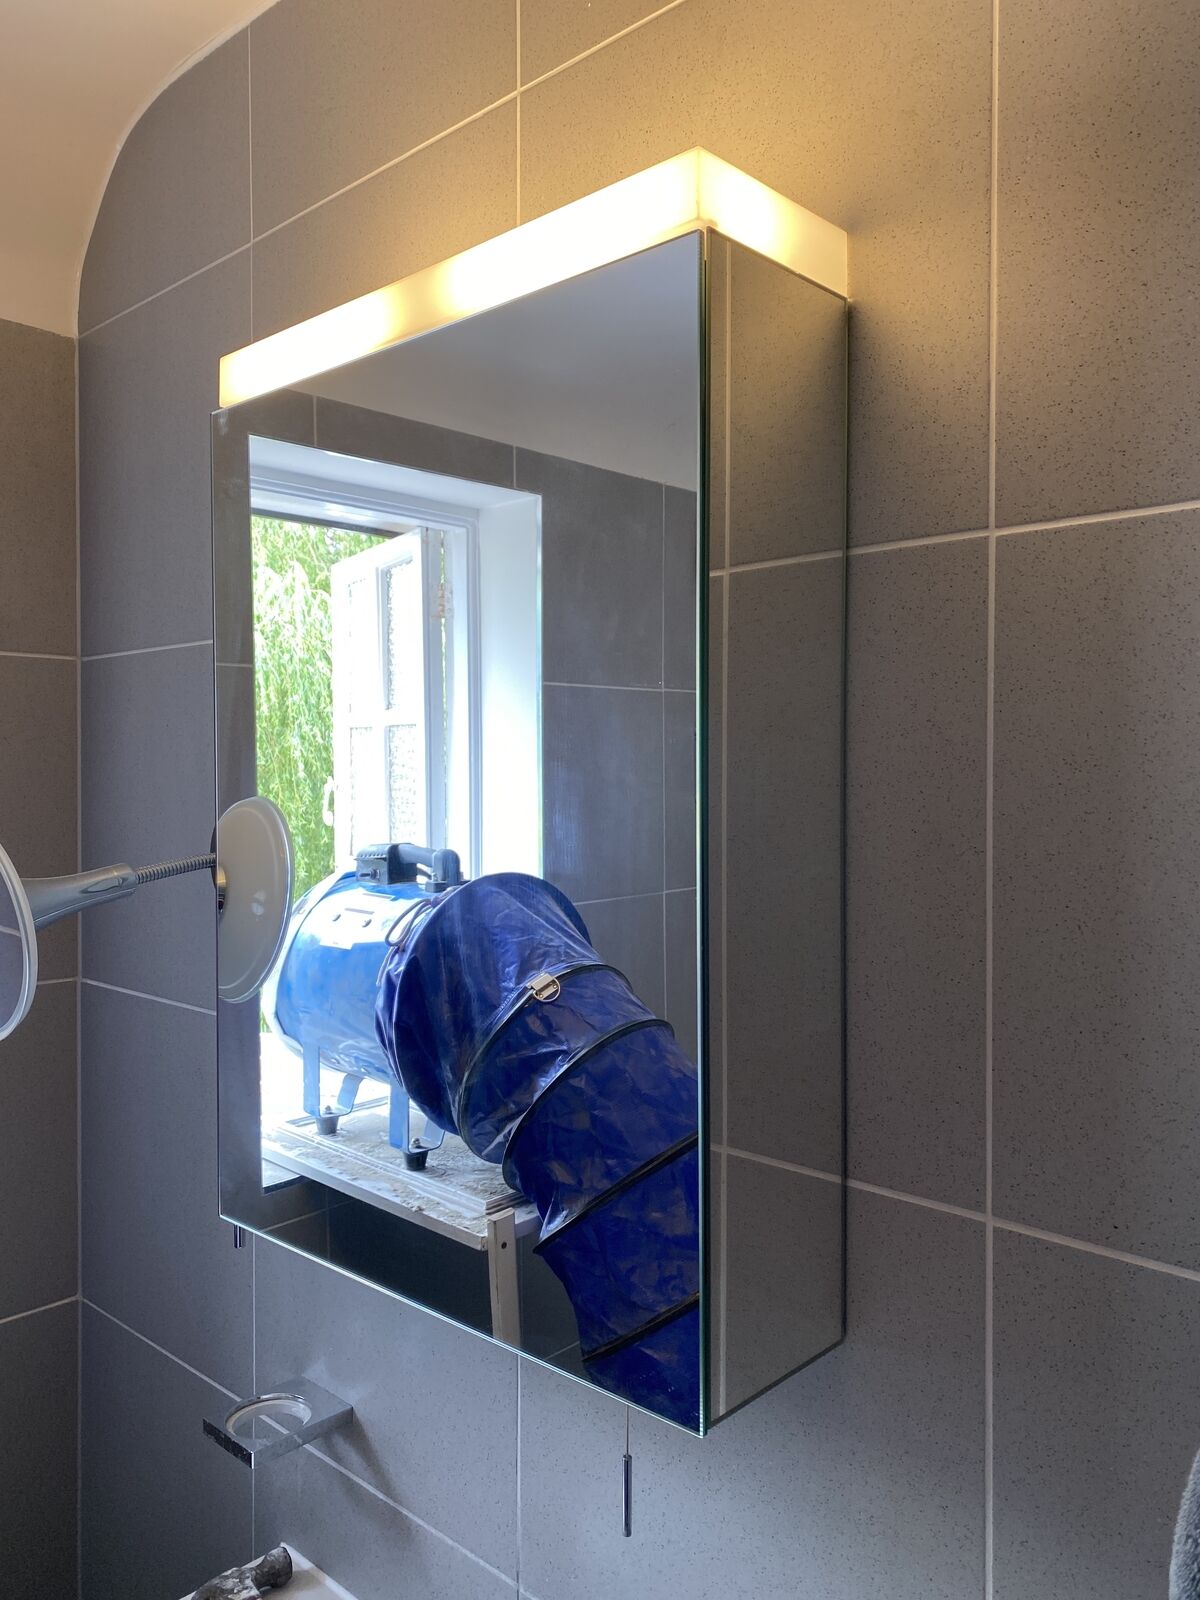 Keuco Royal Reflex mirror cabinet with light and shelves 24001171131 ex display